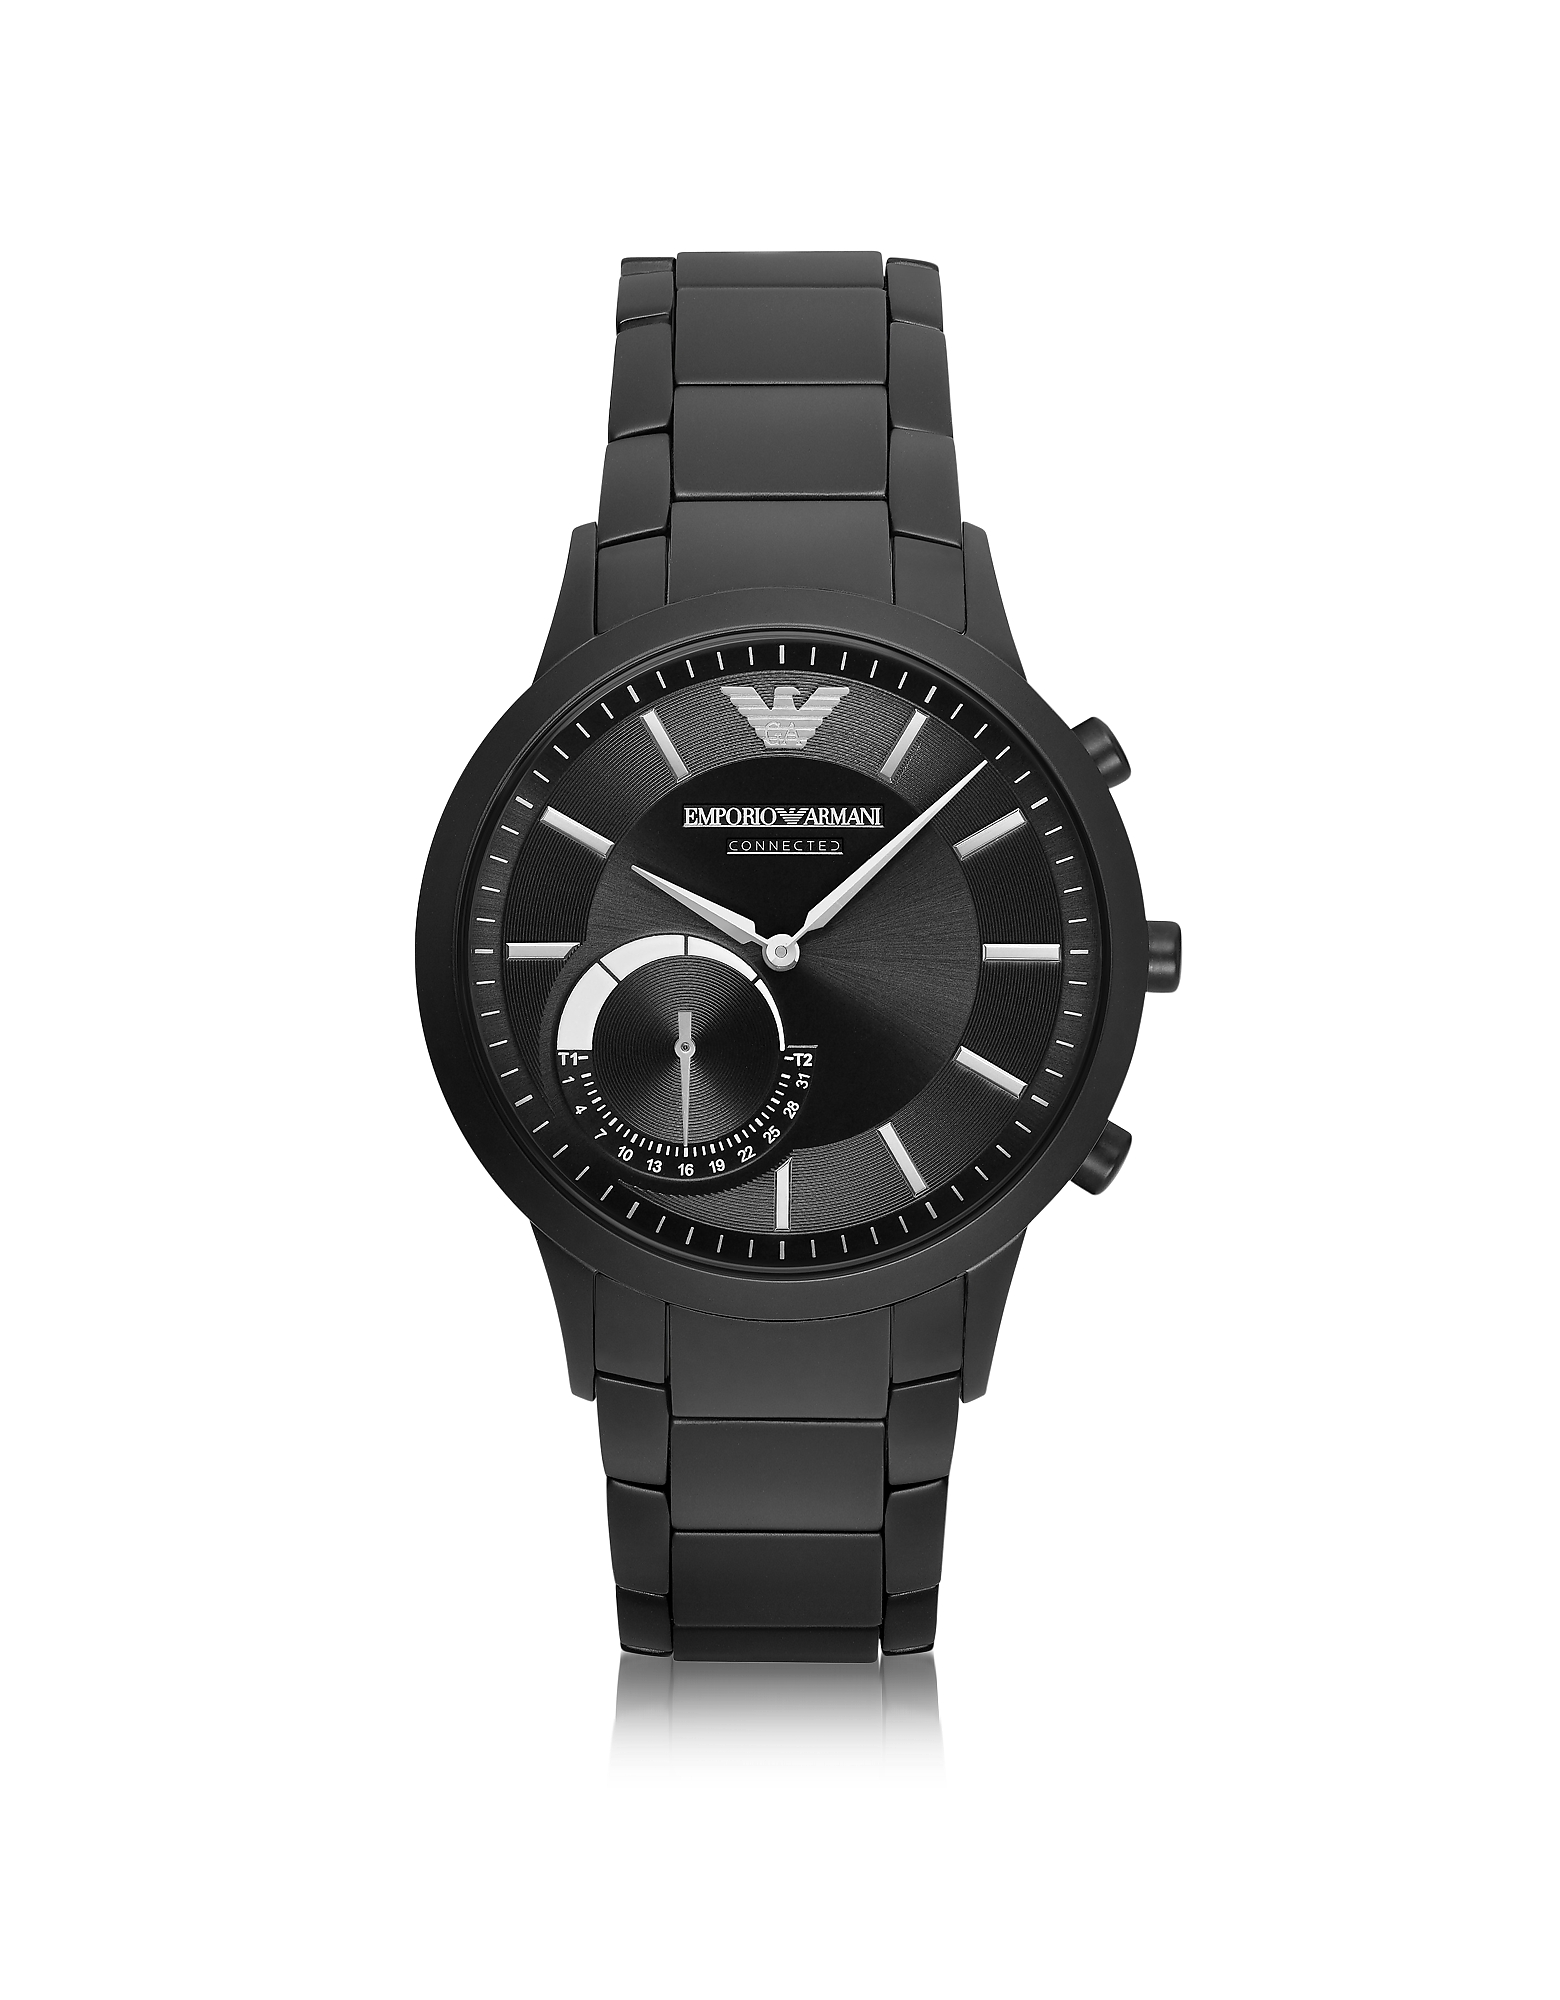 Emporio Armani Men's Watches, Connected Black PVD Stainless Steel Hibrid Men's Smartwatch